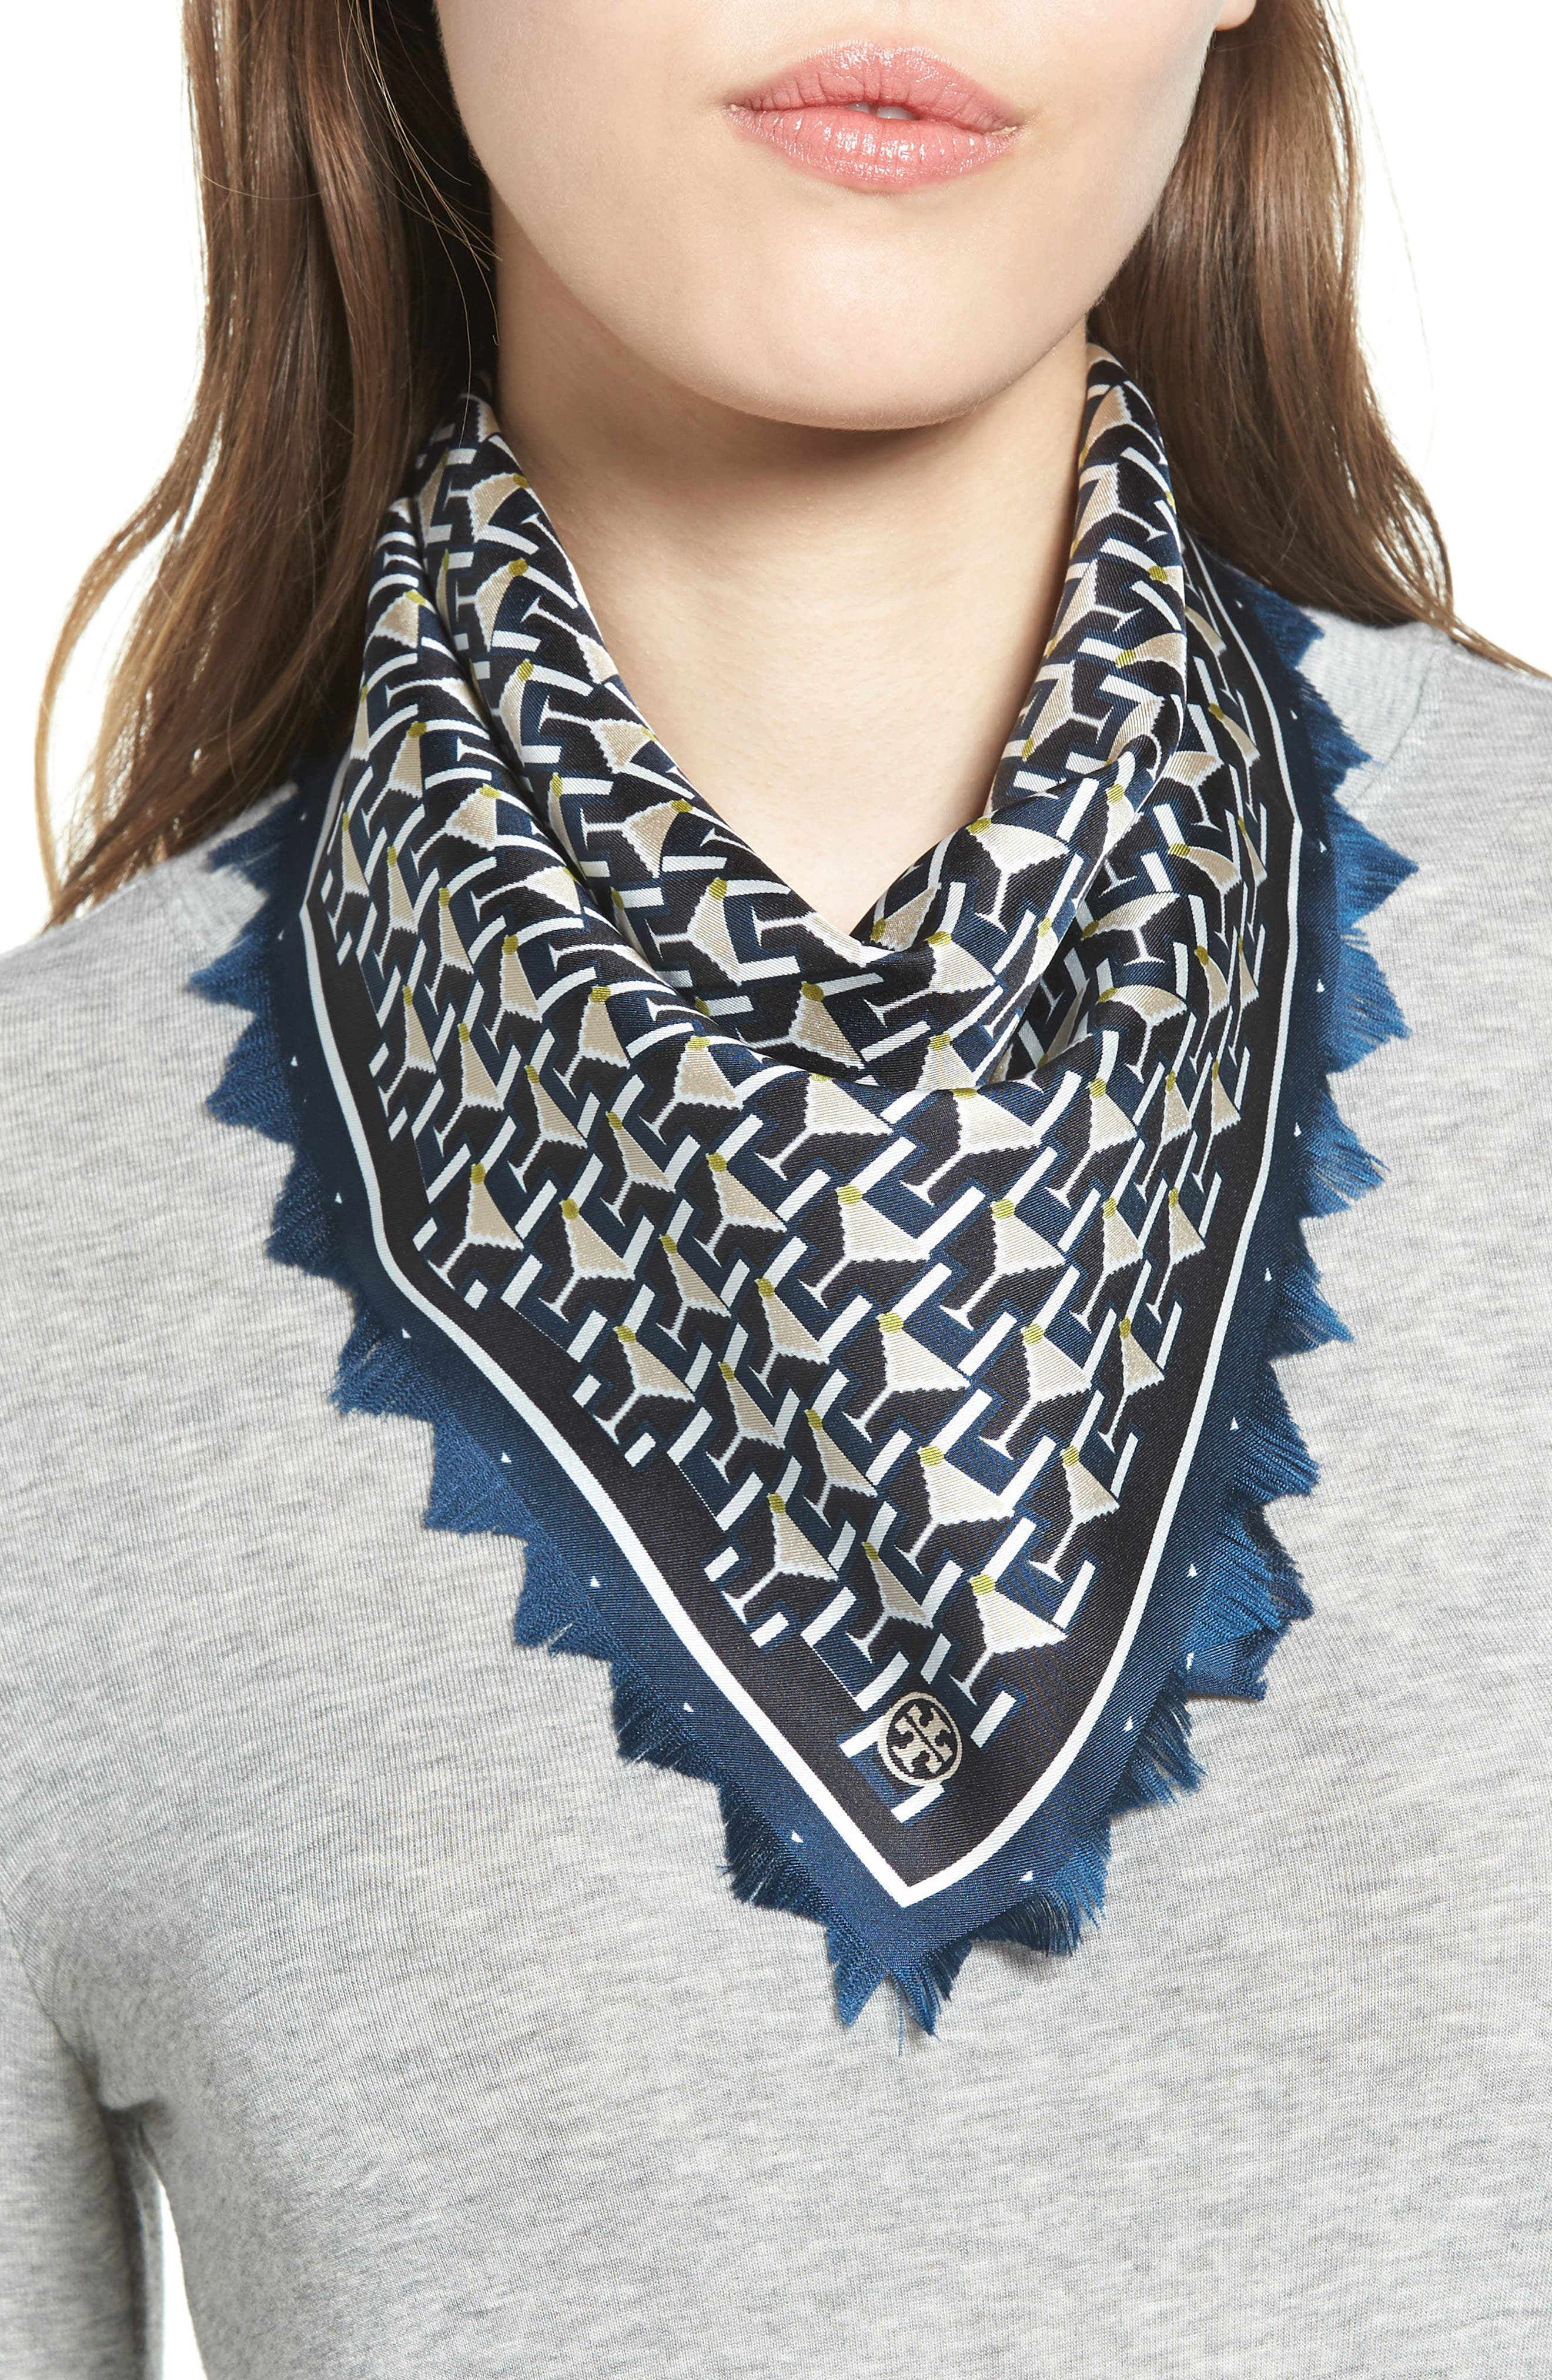 Tory Burch Martini Silk Neckerchief